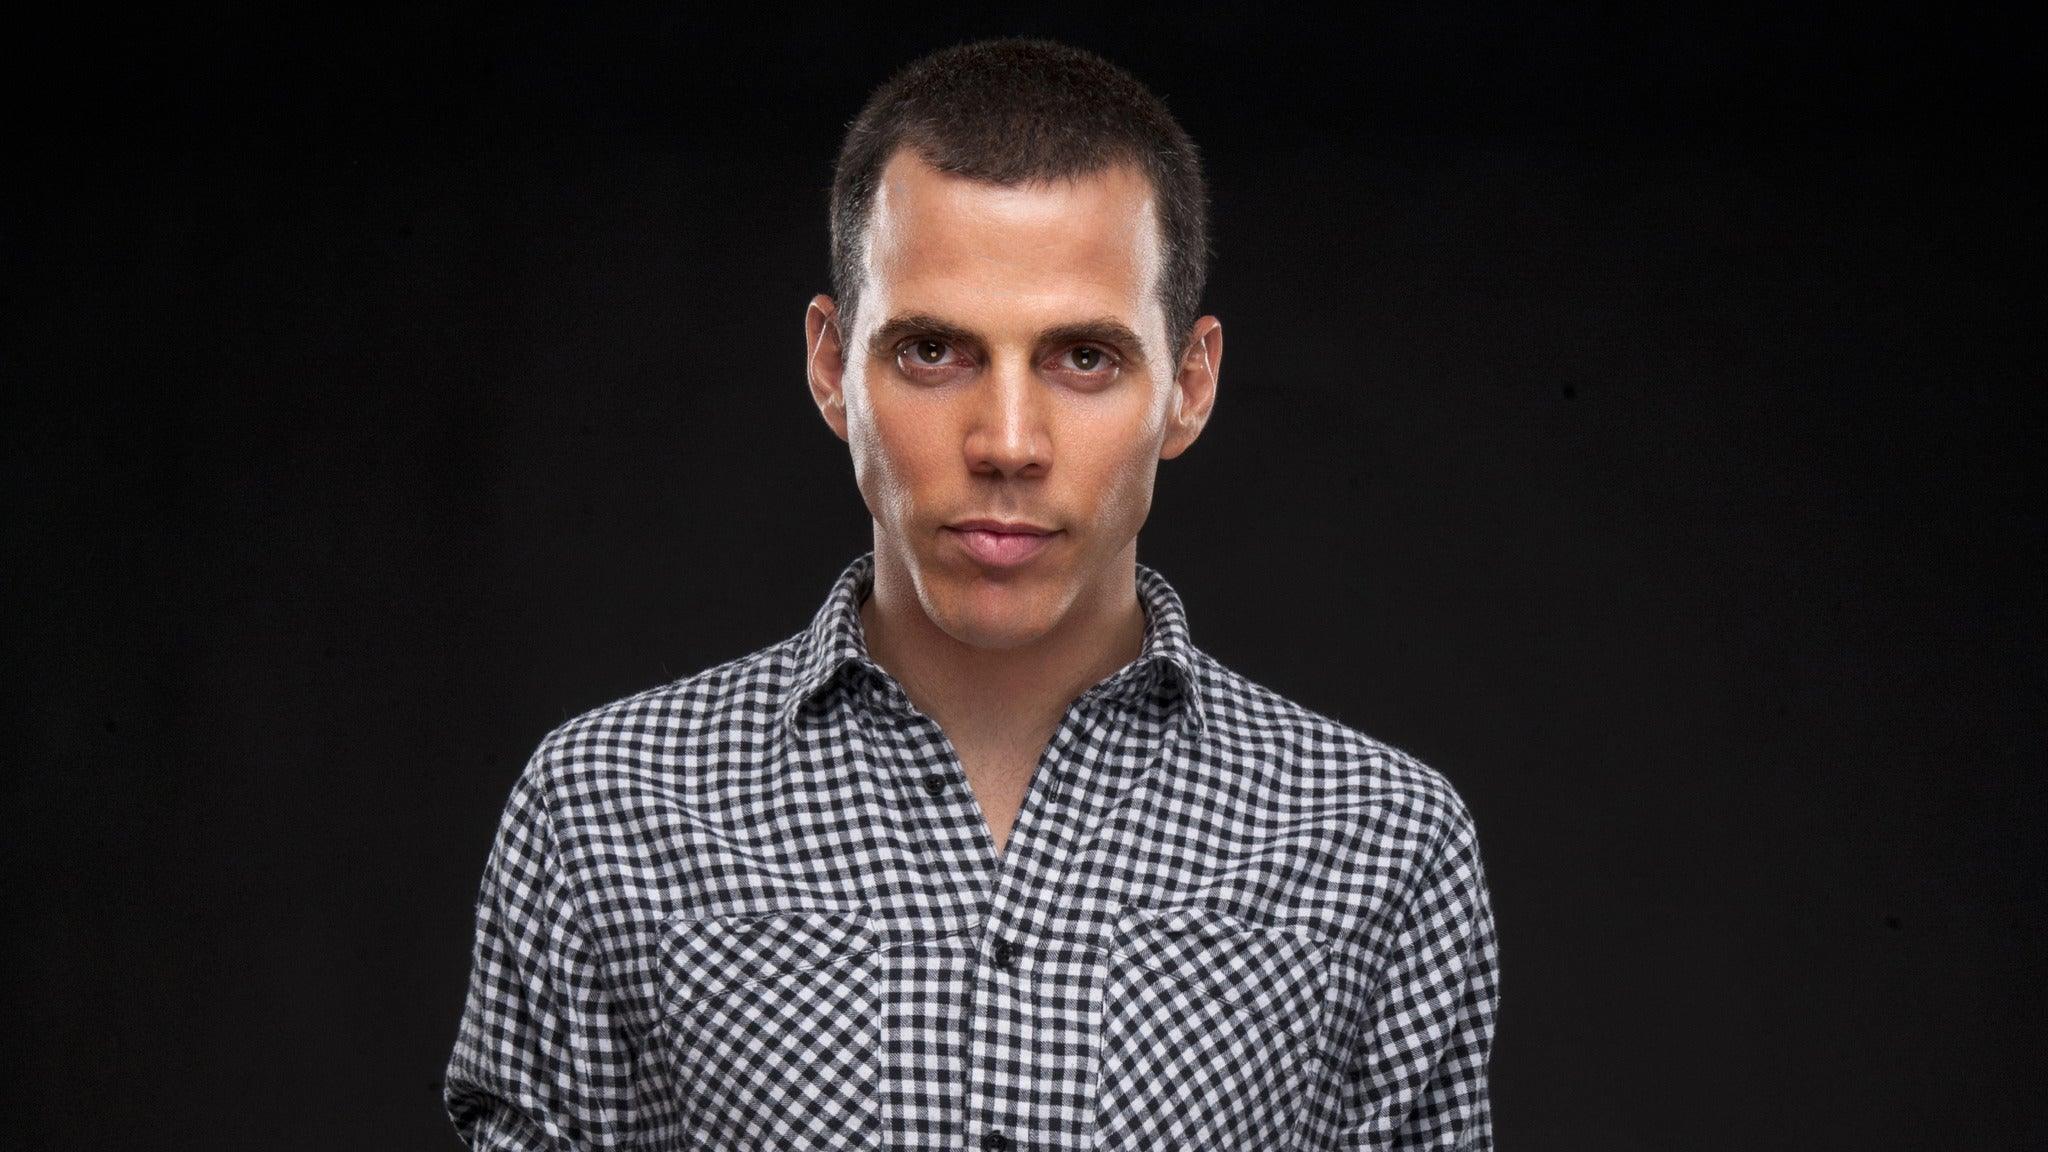 Steve-O at Brea Improv